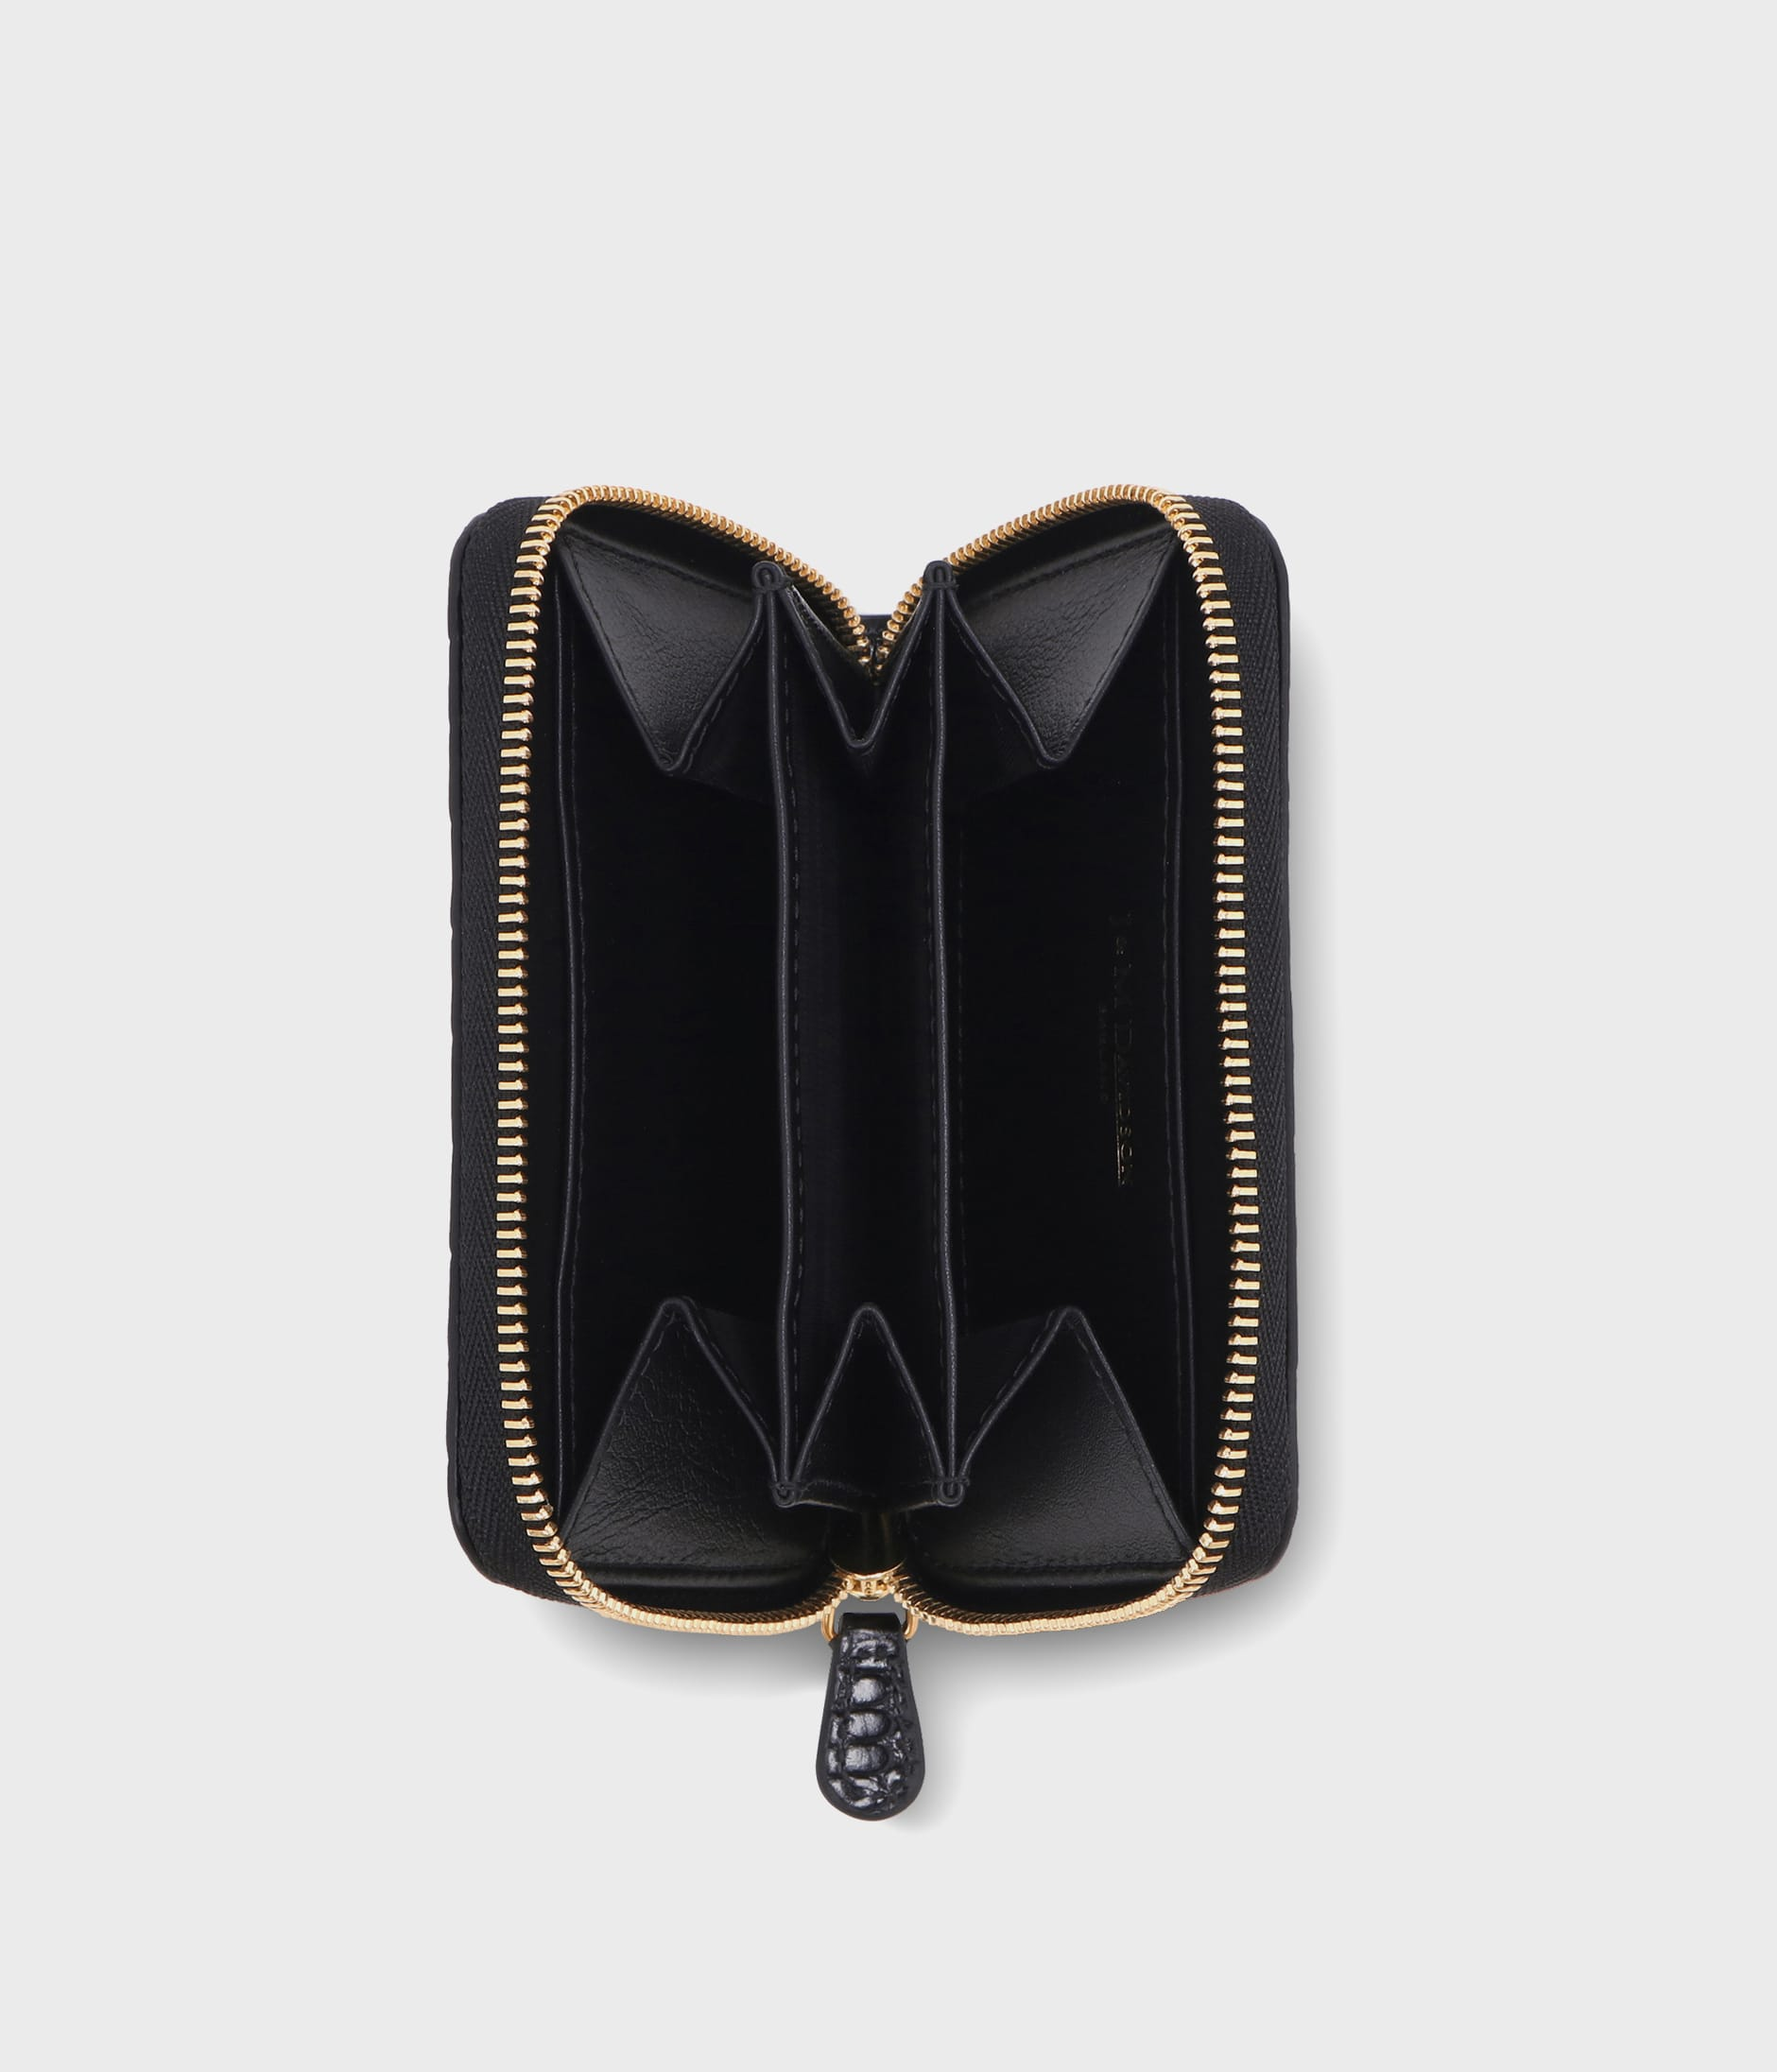 SMALL ZIP PURSE 詳細画像 BLACK 3